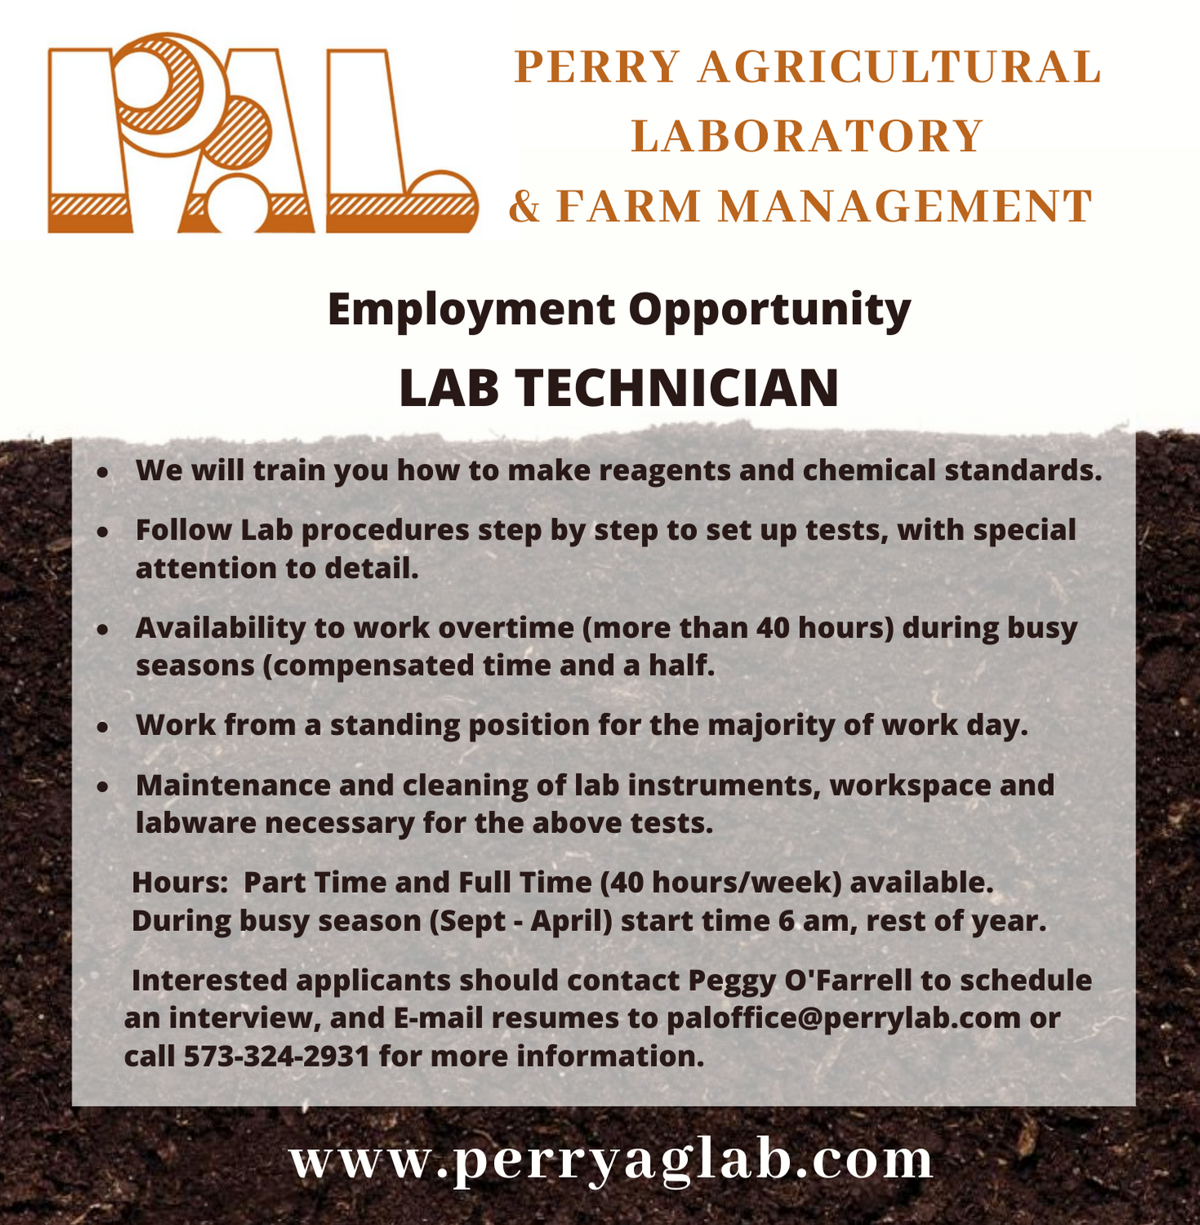 Perry Agricultural Laboratory & Farm Management